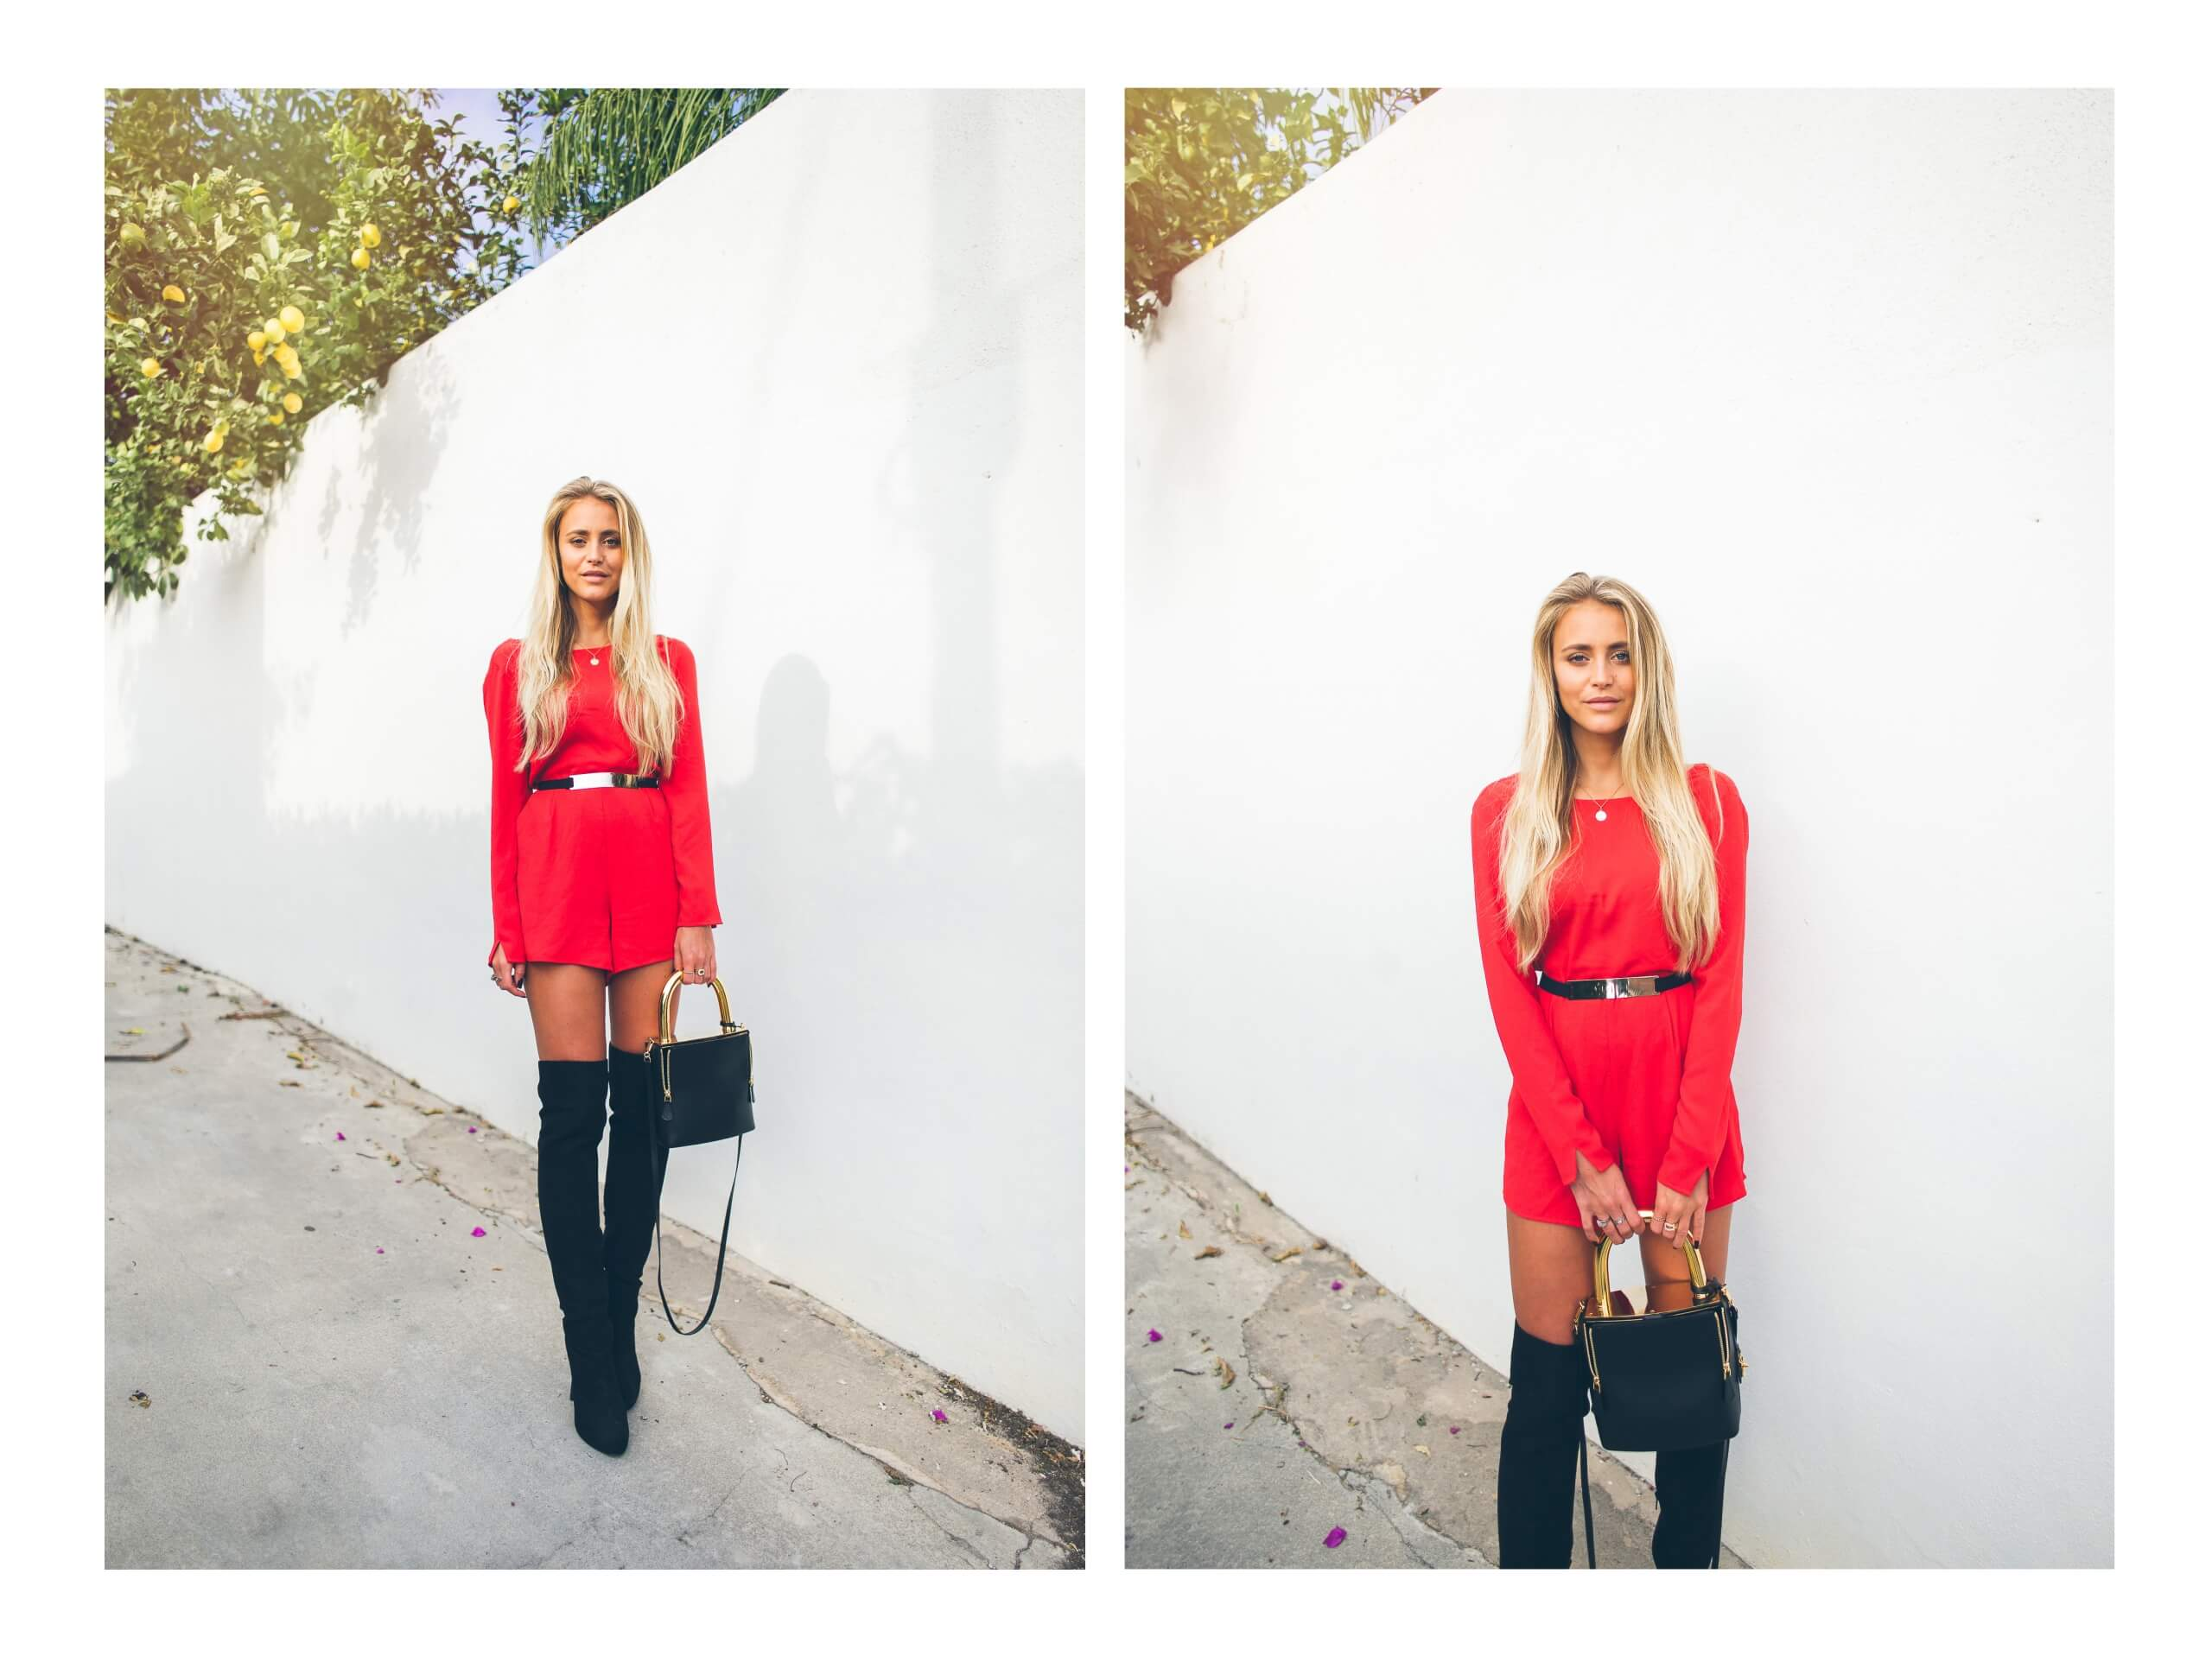 janni-deler-red-christmas-lookL1008644-Redigera copy